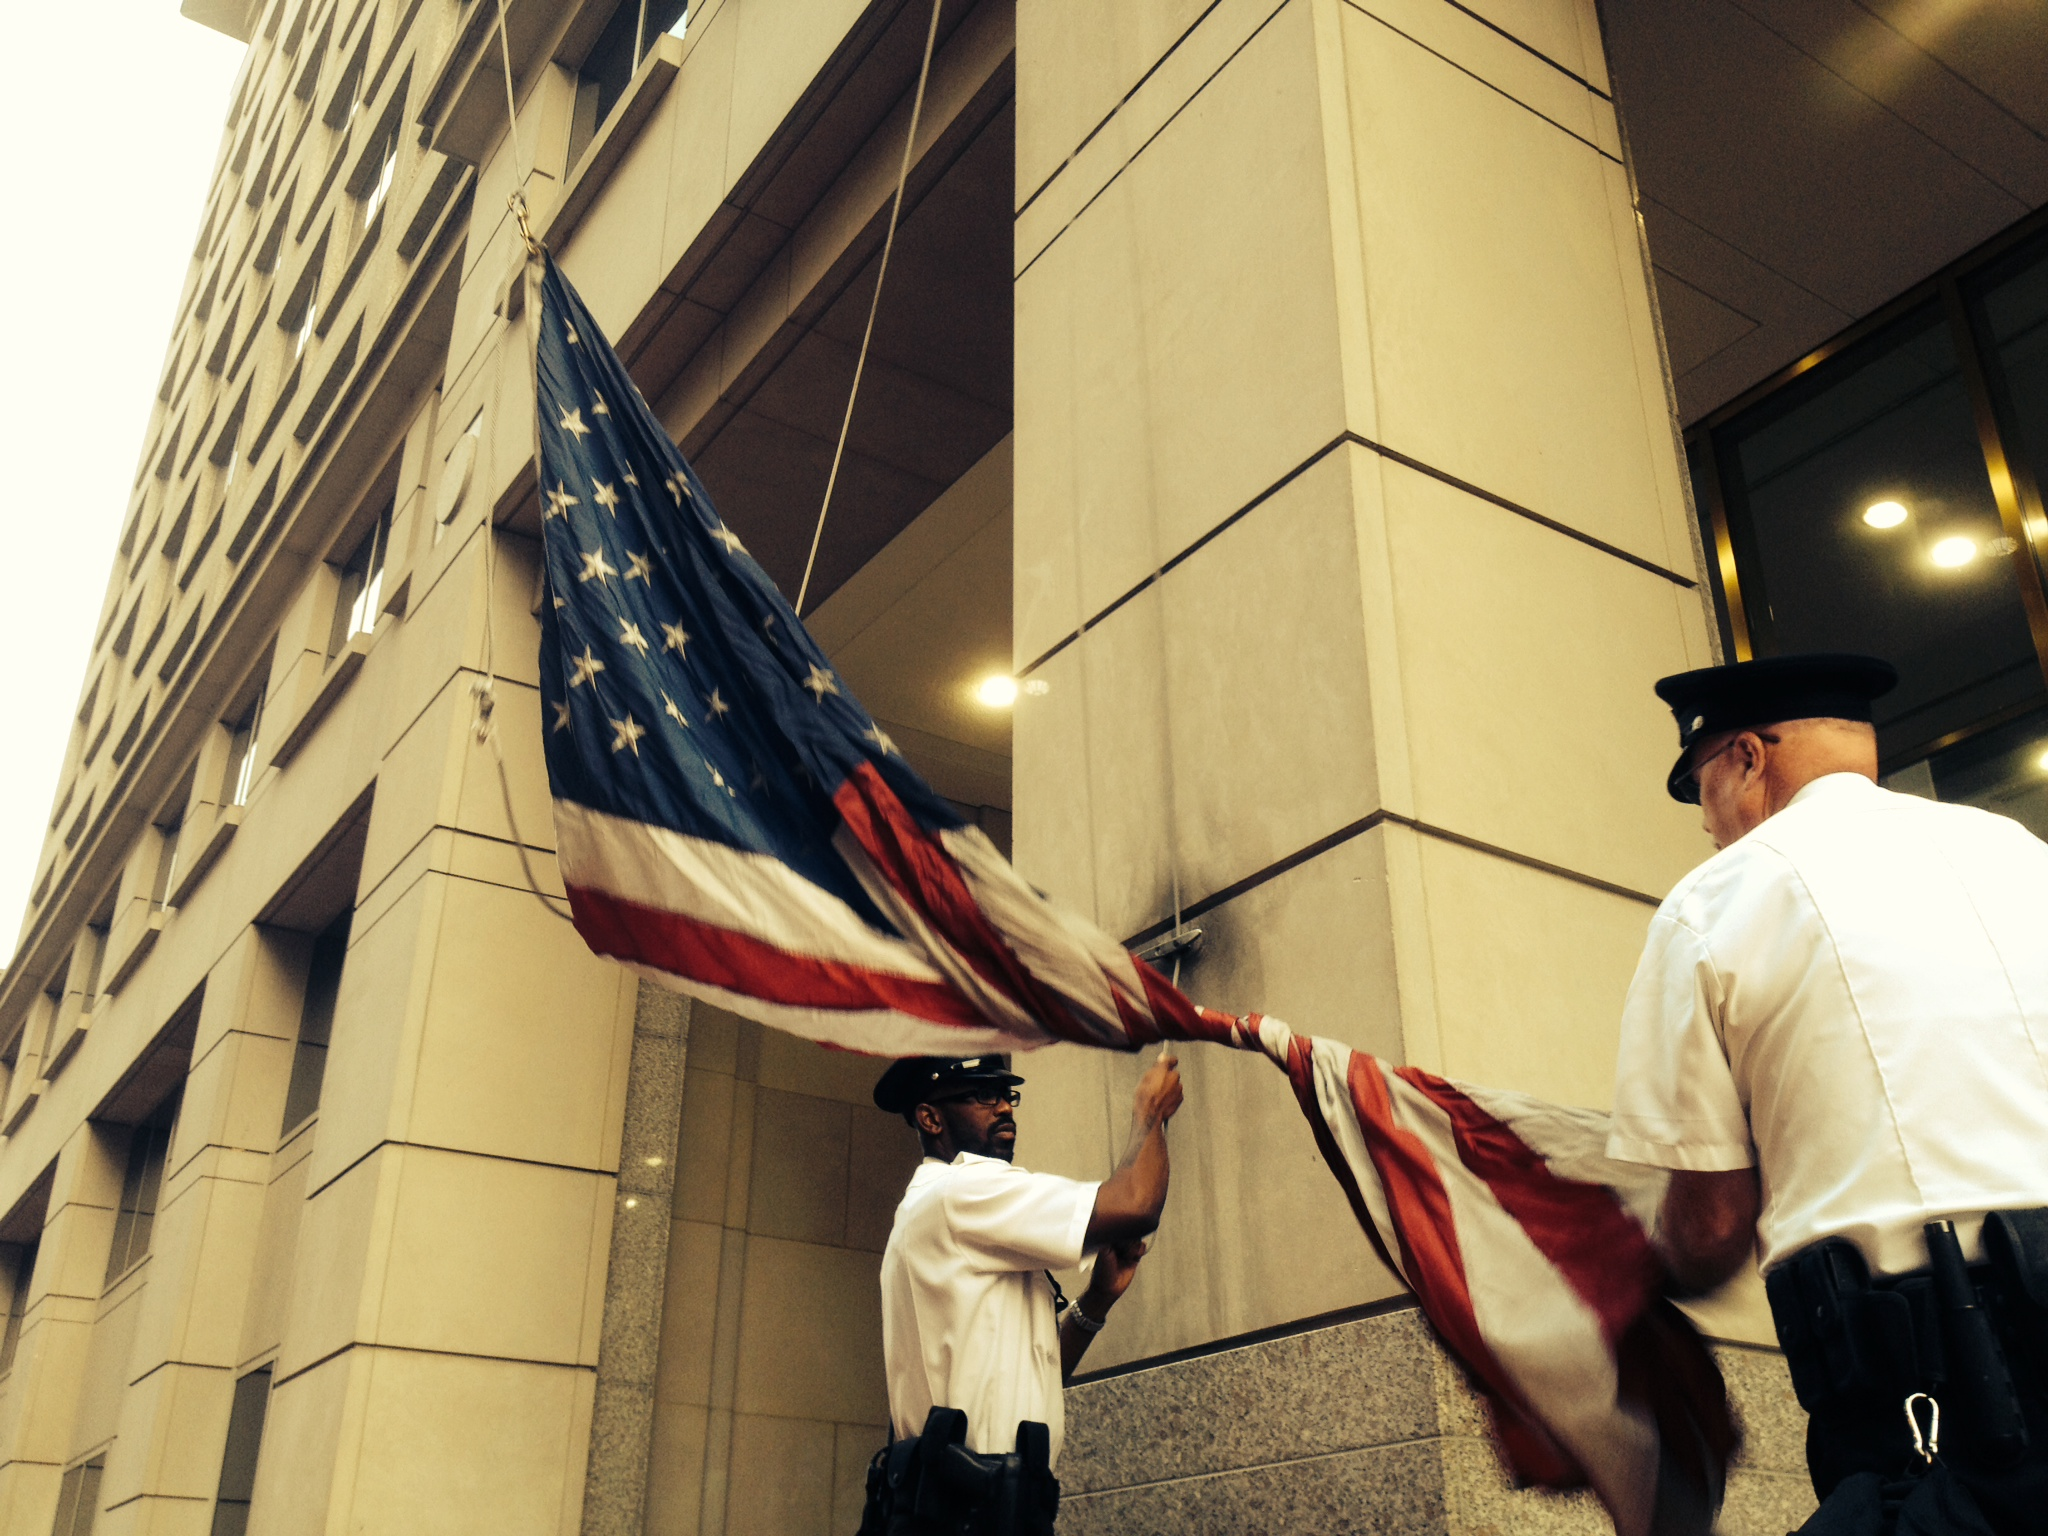 Treatment and etiquette tips for the American flag